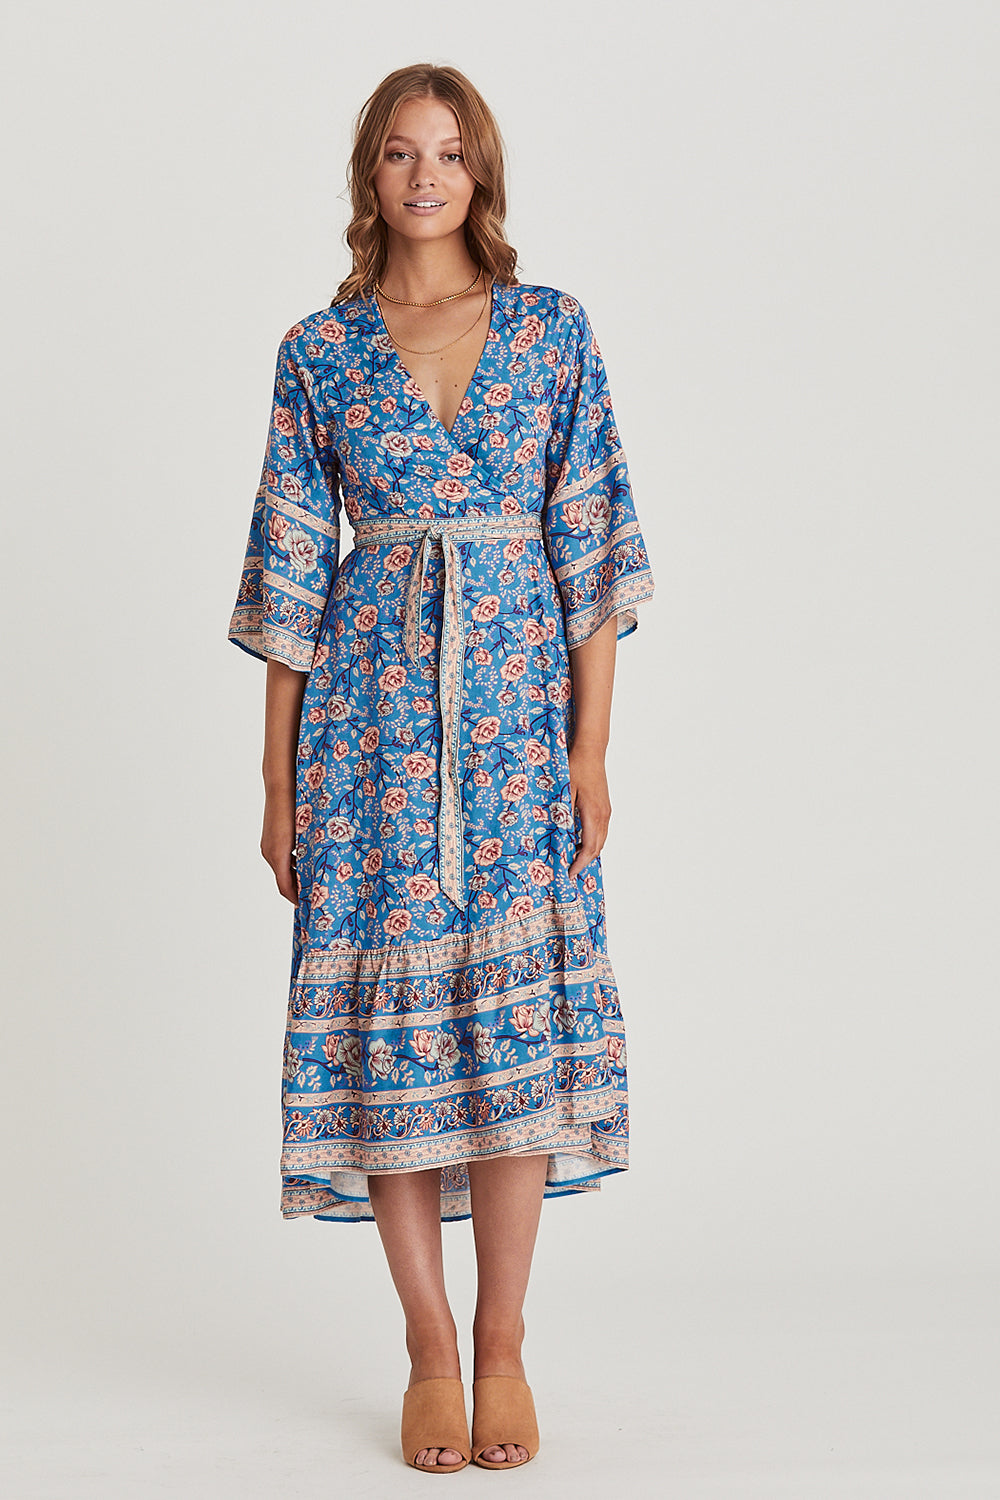 Bella Rosa Wrap Dress in Olympia